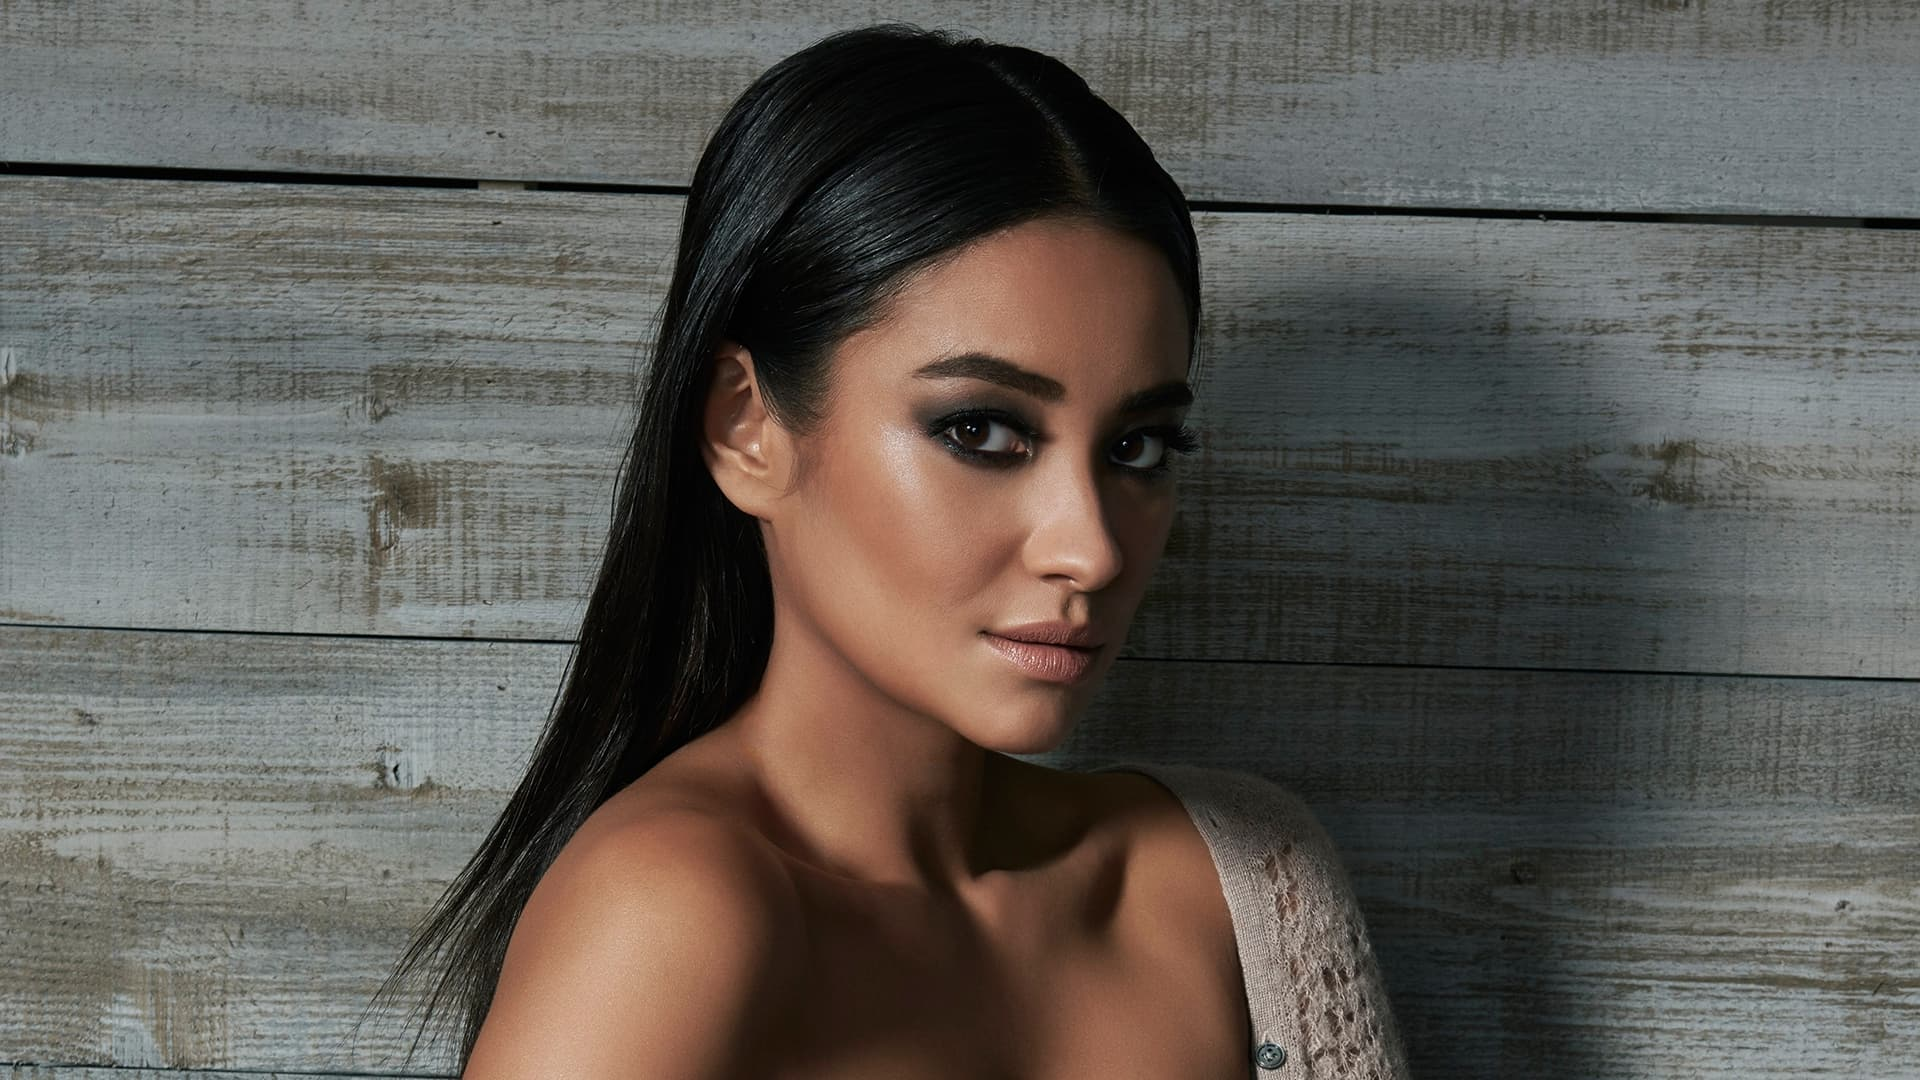 Cute Poppy 1080p Wallpaper Shay Mitchell Wallpapers Hd High Quality Download